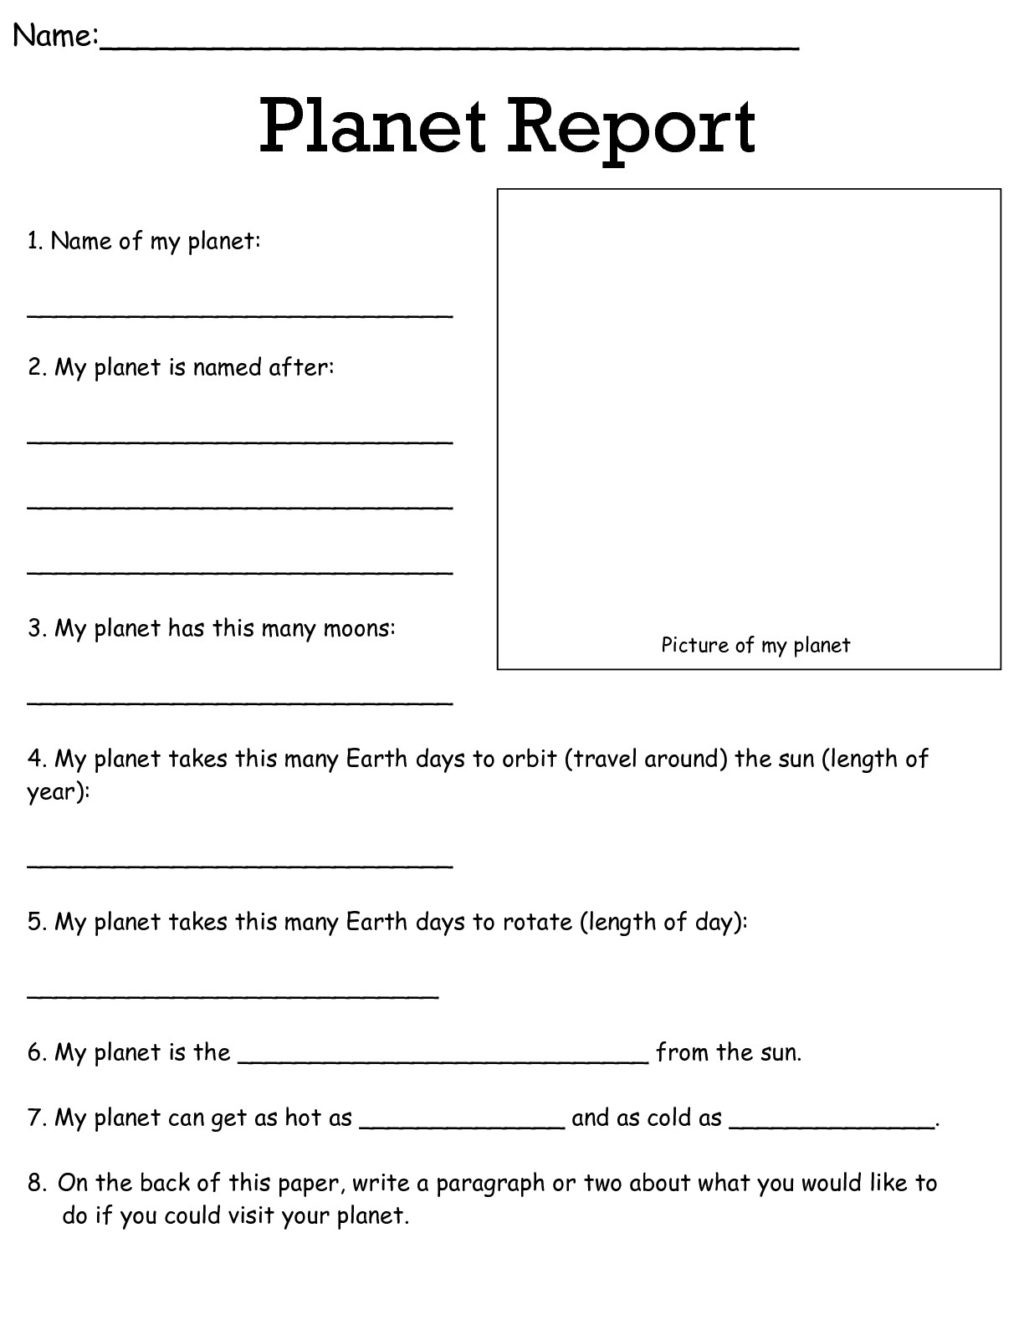 Social Studies Worksheets 8th Grade Worksheet Math In Science Worksheets Free Printable for